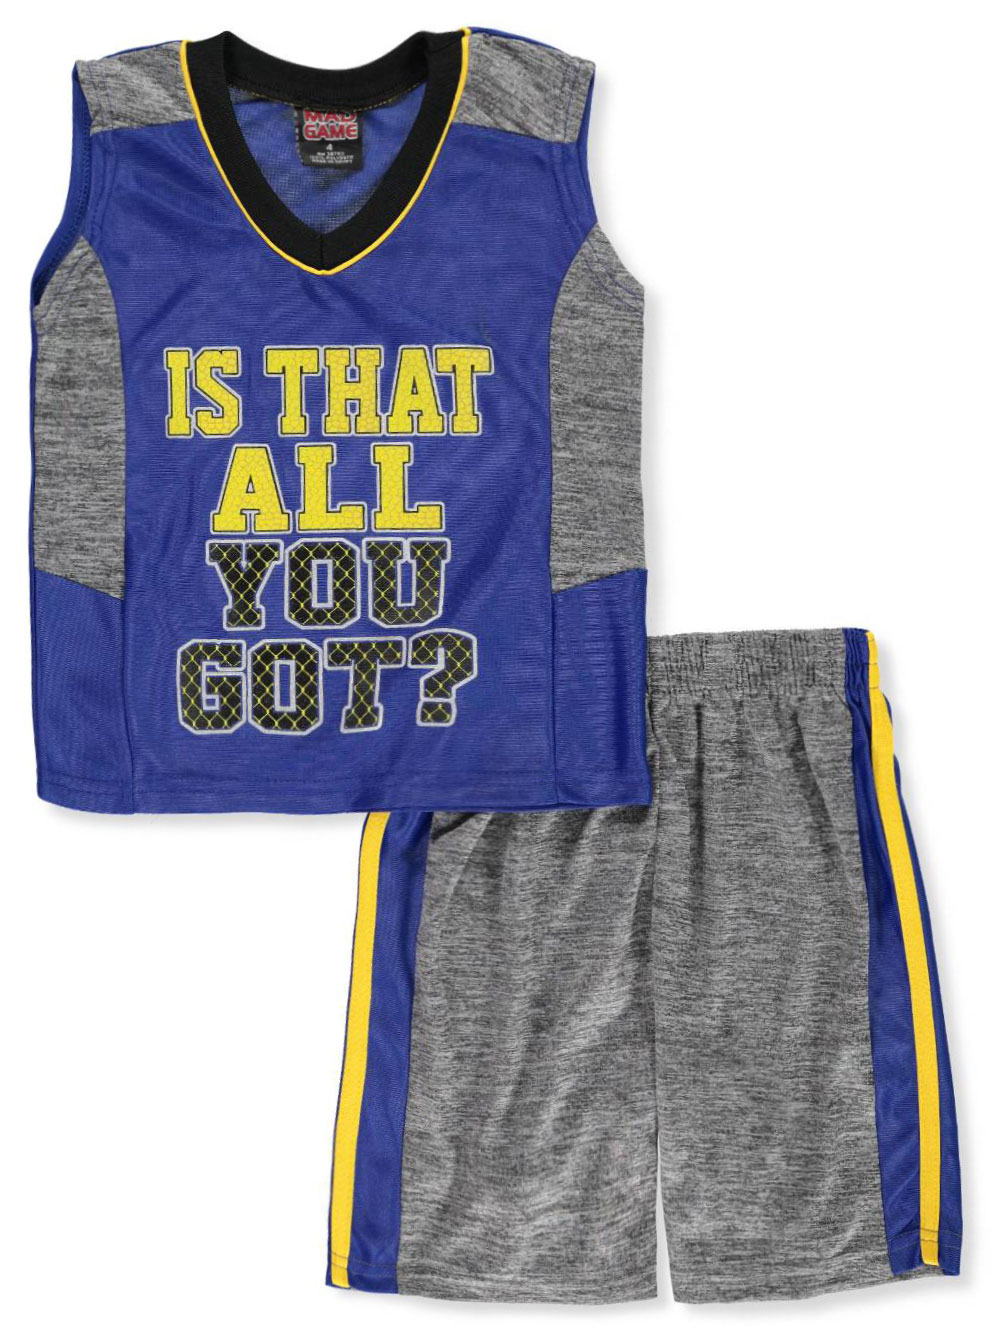 cadb6265 Boys' 2-Piece Shorts Set Outfit by Mad Game in charcoal/blue, charcoal/red  and navy/gray